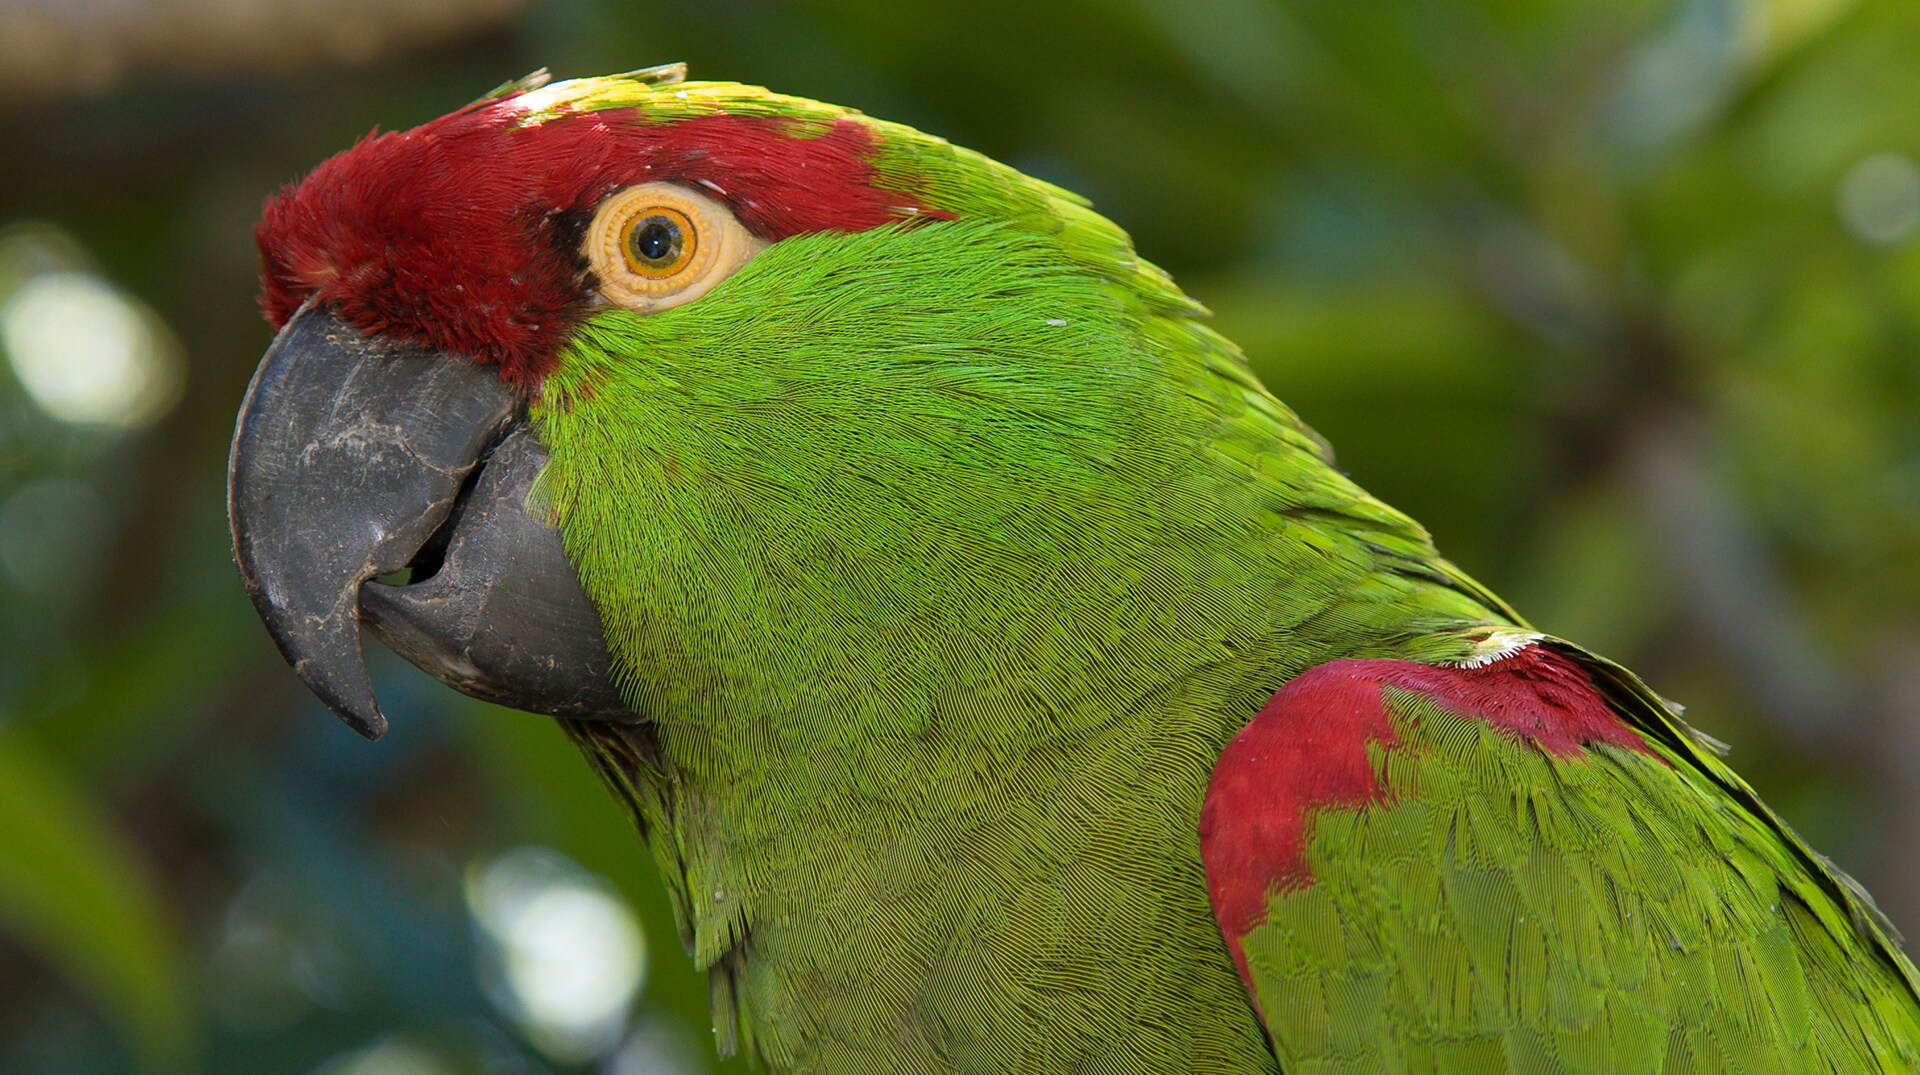 Portrait of an endangered thick-billed parrot.